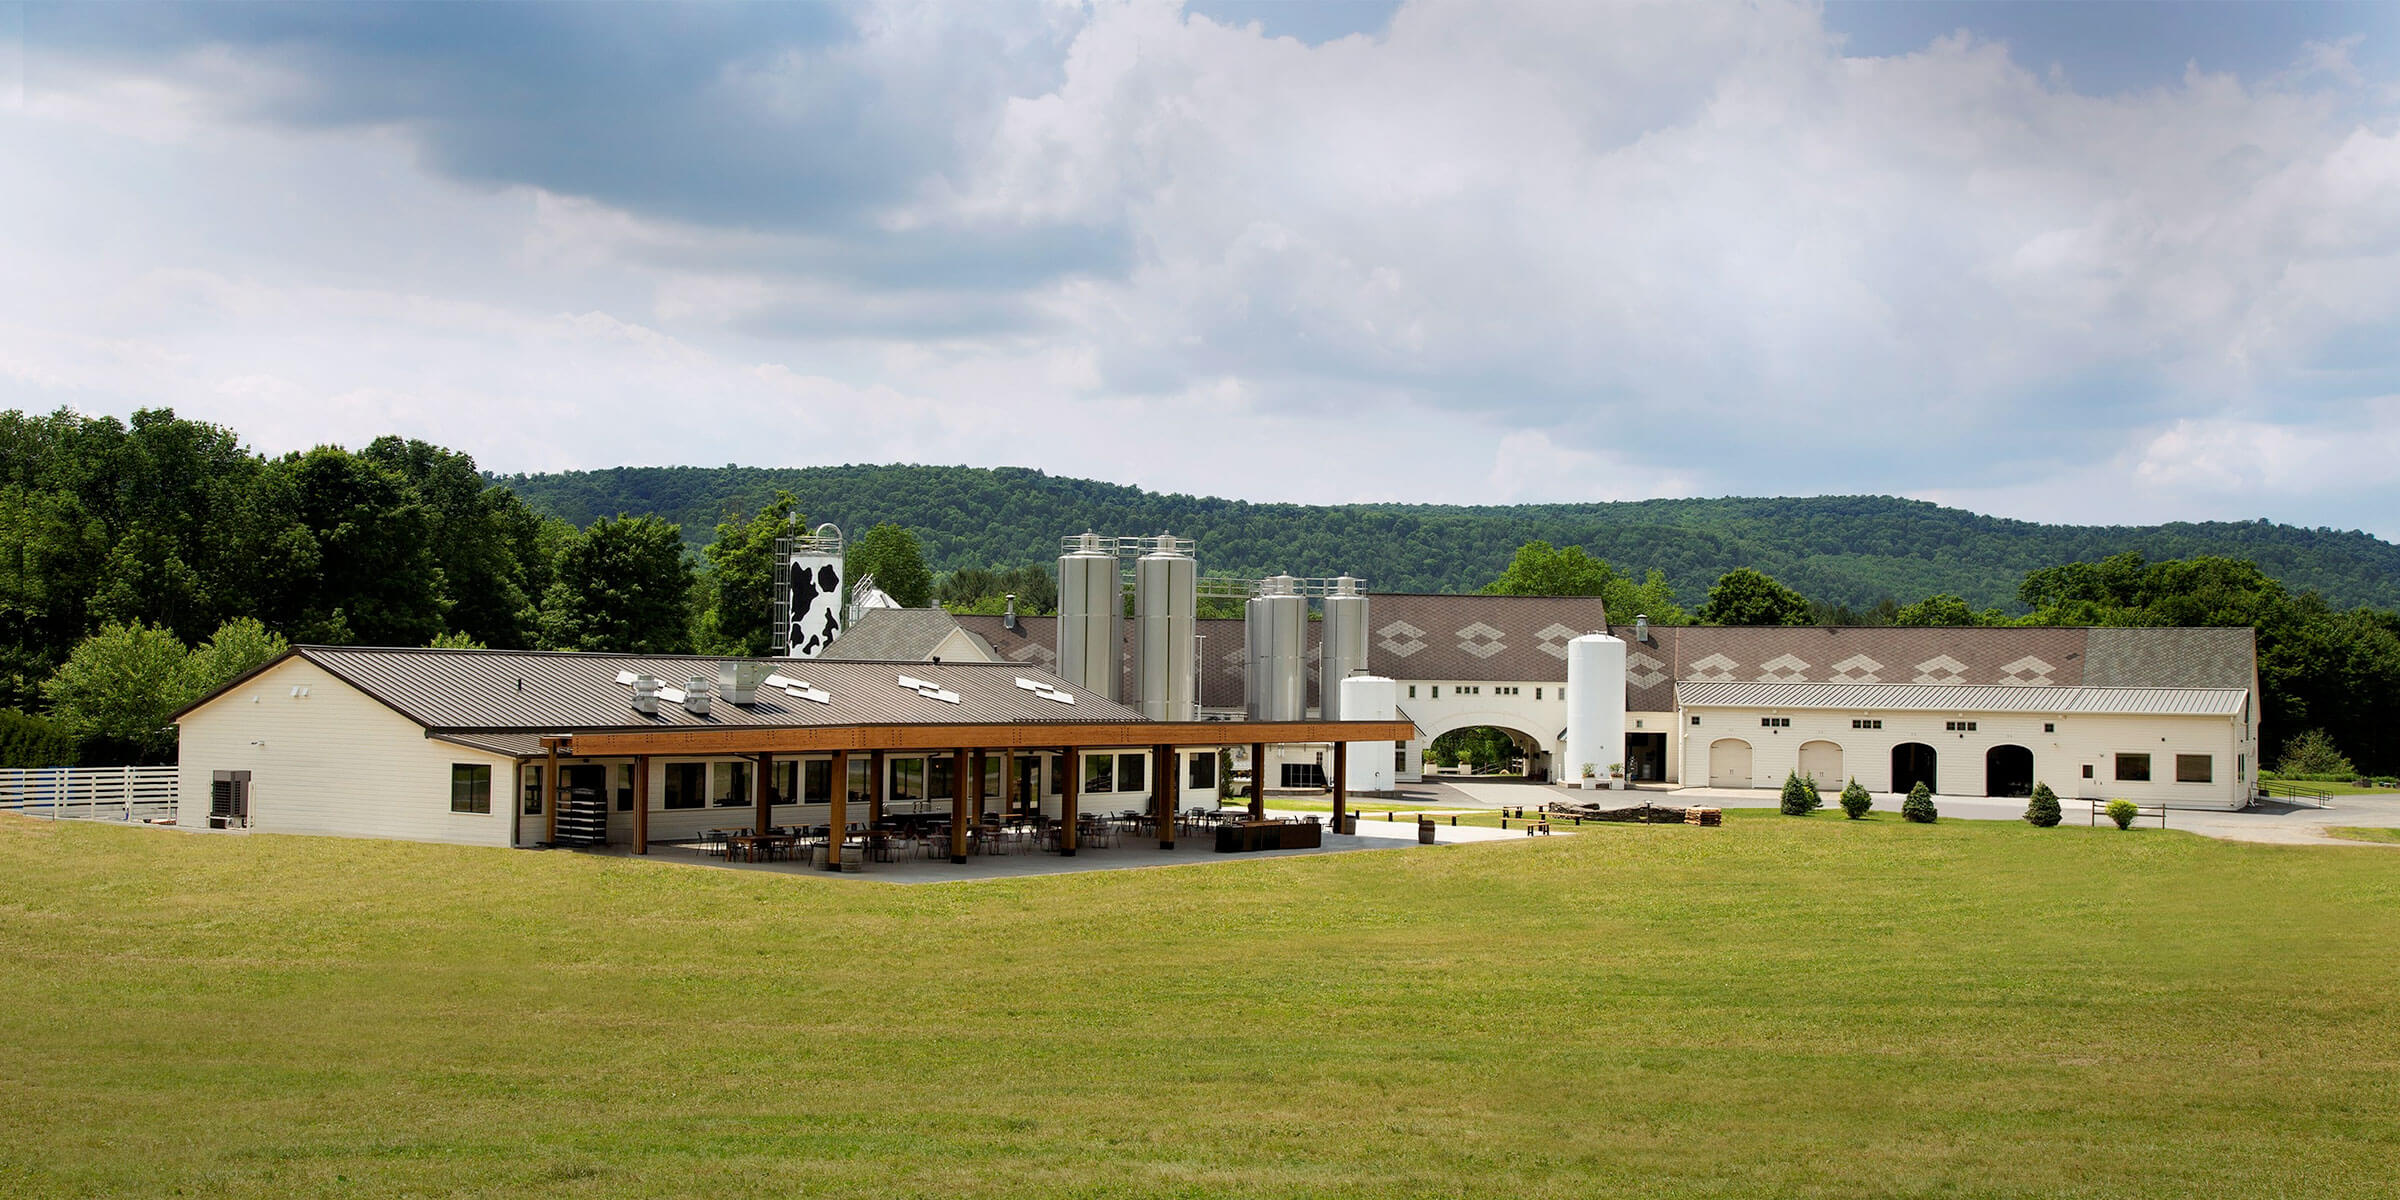 Outside Brewery Ommegang in Cooperstown, New York